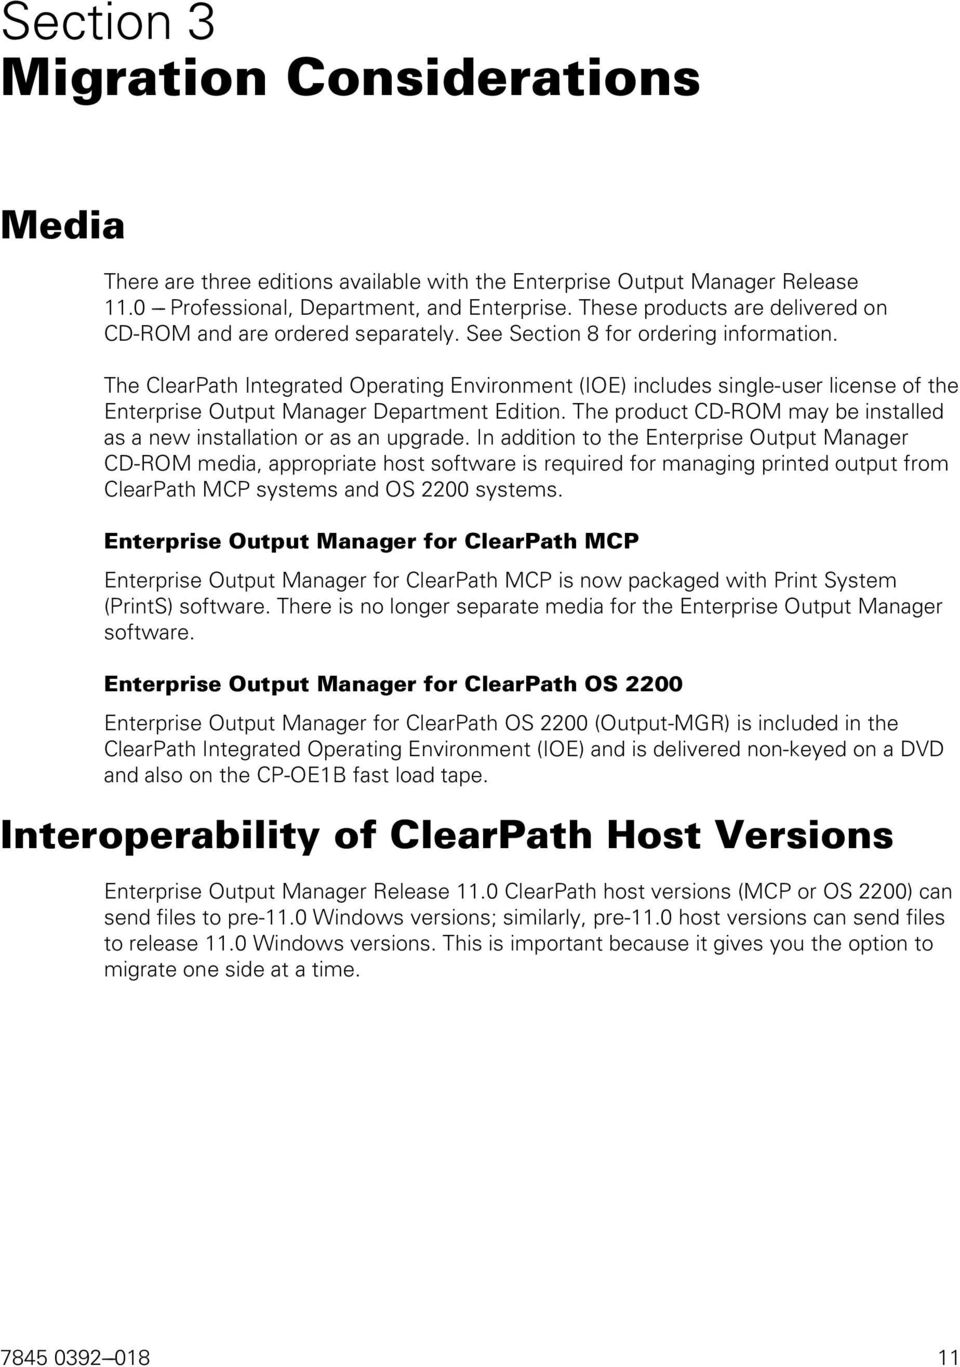 The ClearPath Integrated Operating Environment (IOE) includes single-user license of the Enterprise Output Manager Department Edition.